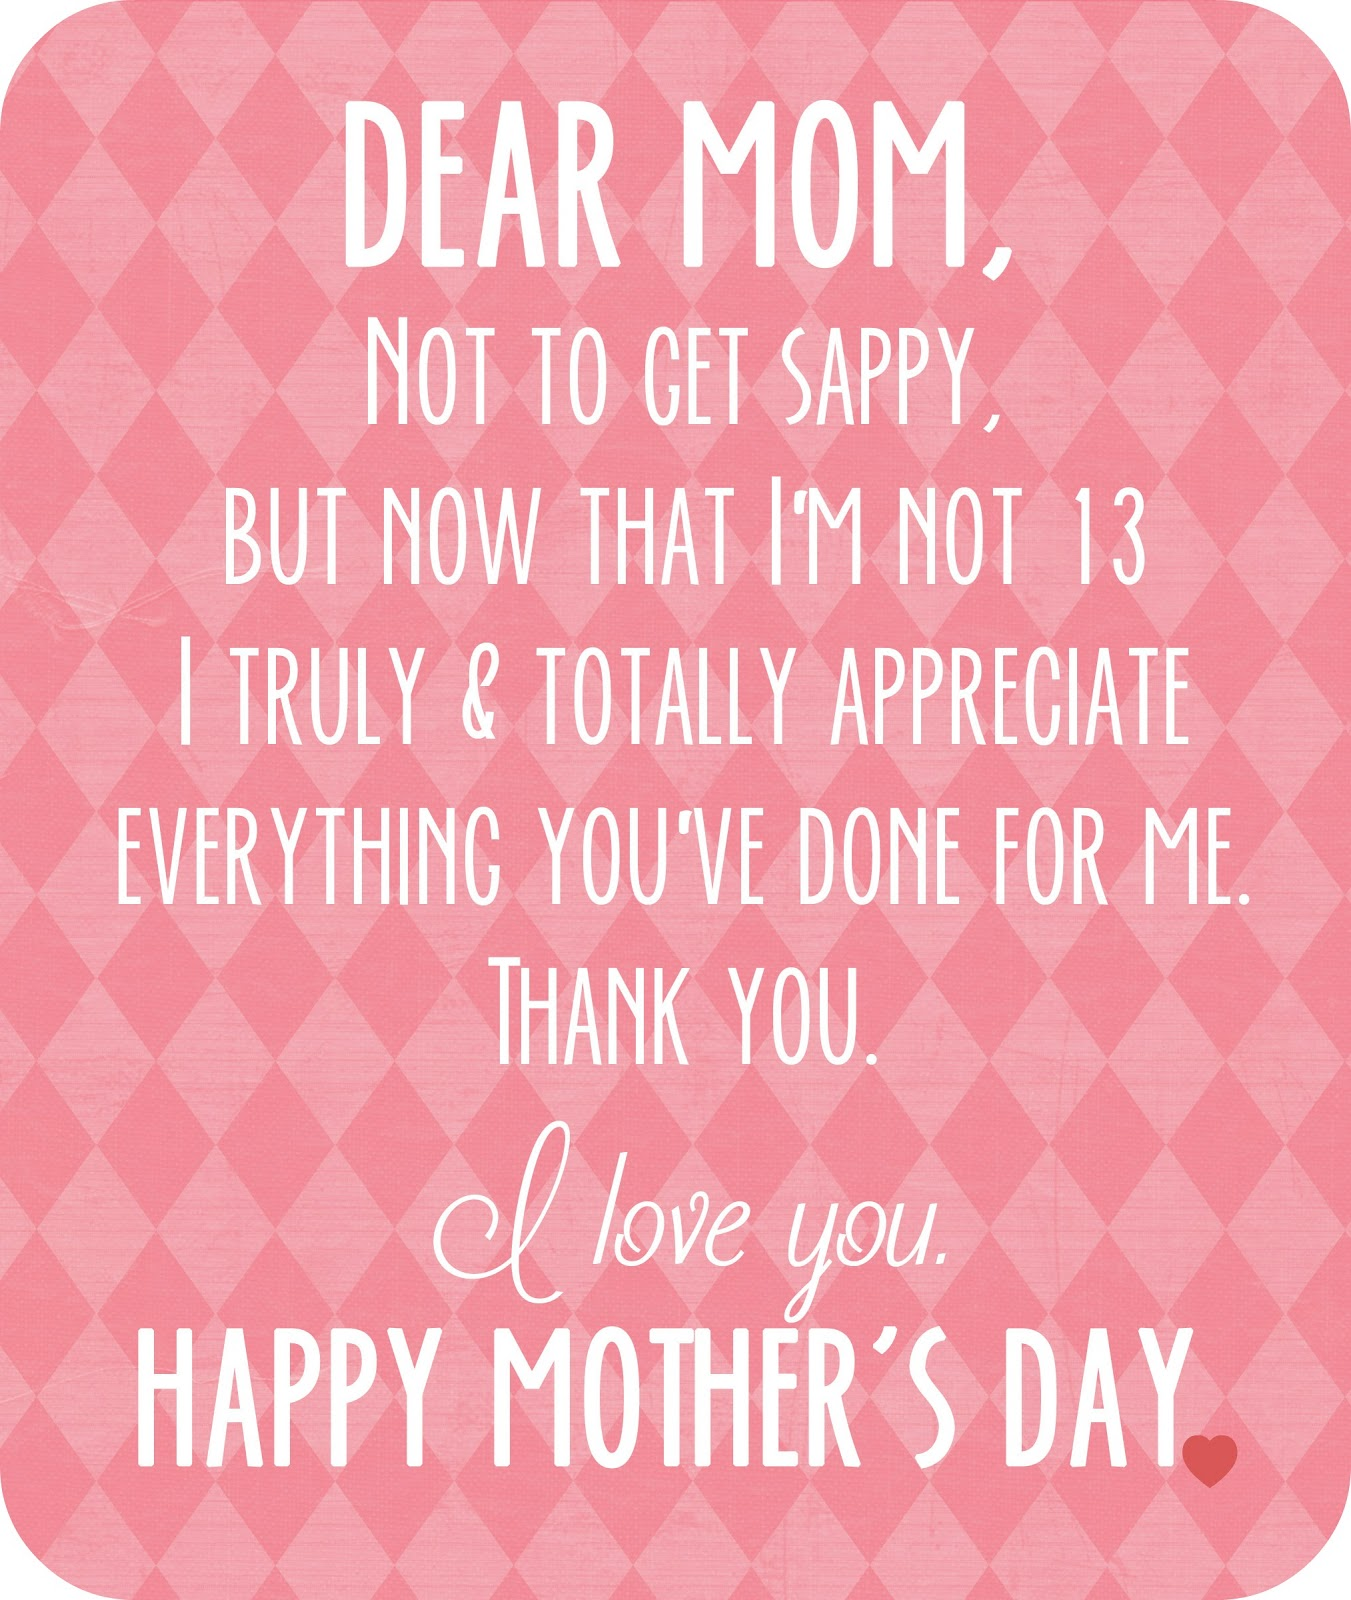 I Love You Mom Quotes From Daughter Tumblr : Dear Mom, I love you. {free printable}